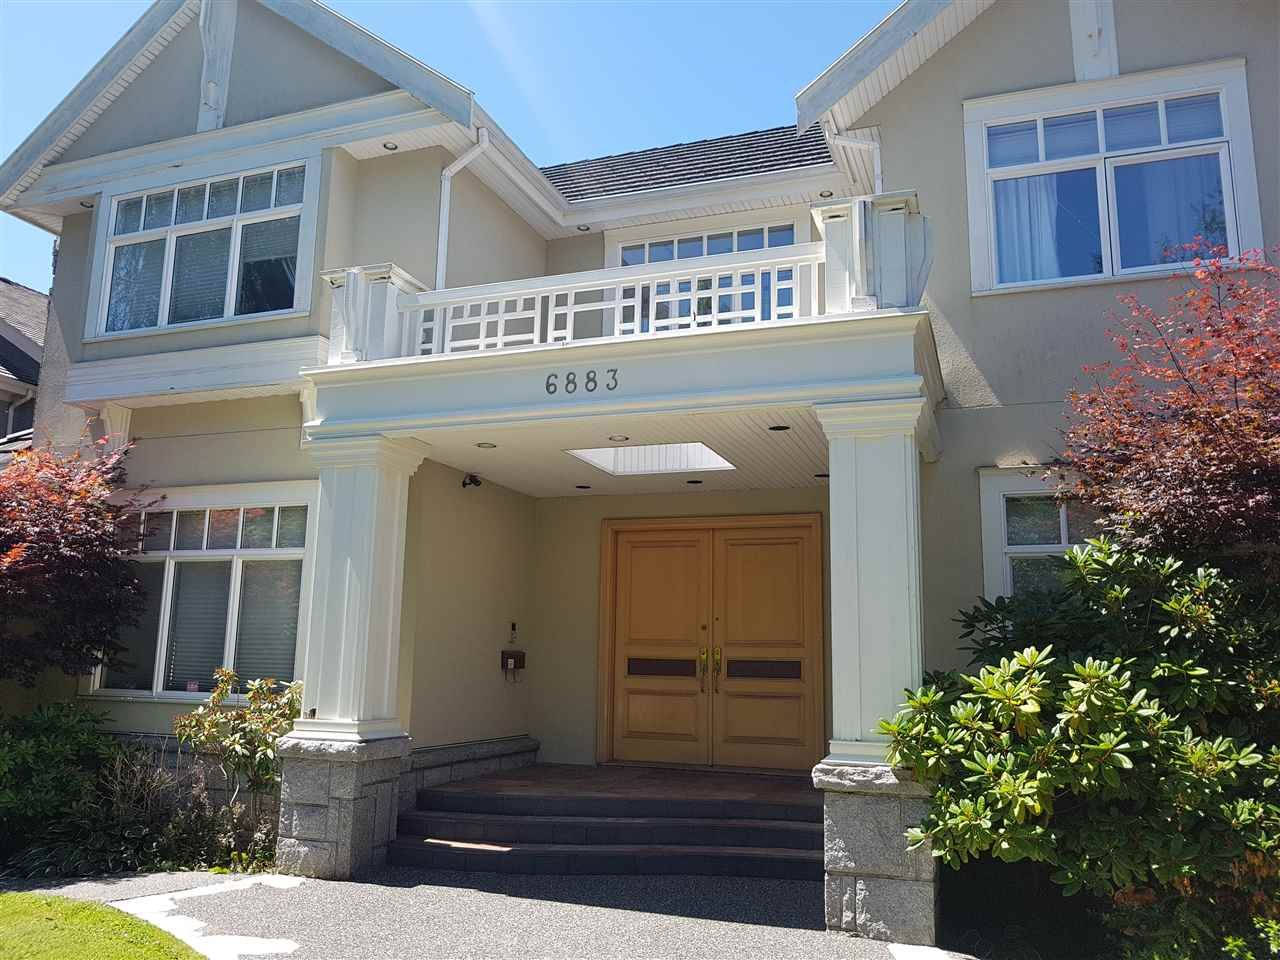 Main Photo: 6883 ANGUS Drive in Vancouver: South Granville House for sale (Vancouver West)  : MLS®# R2553510